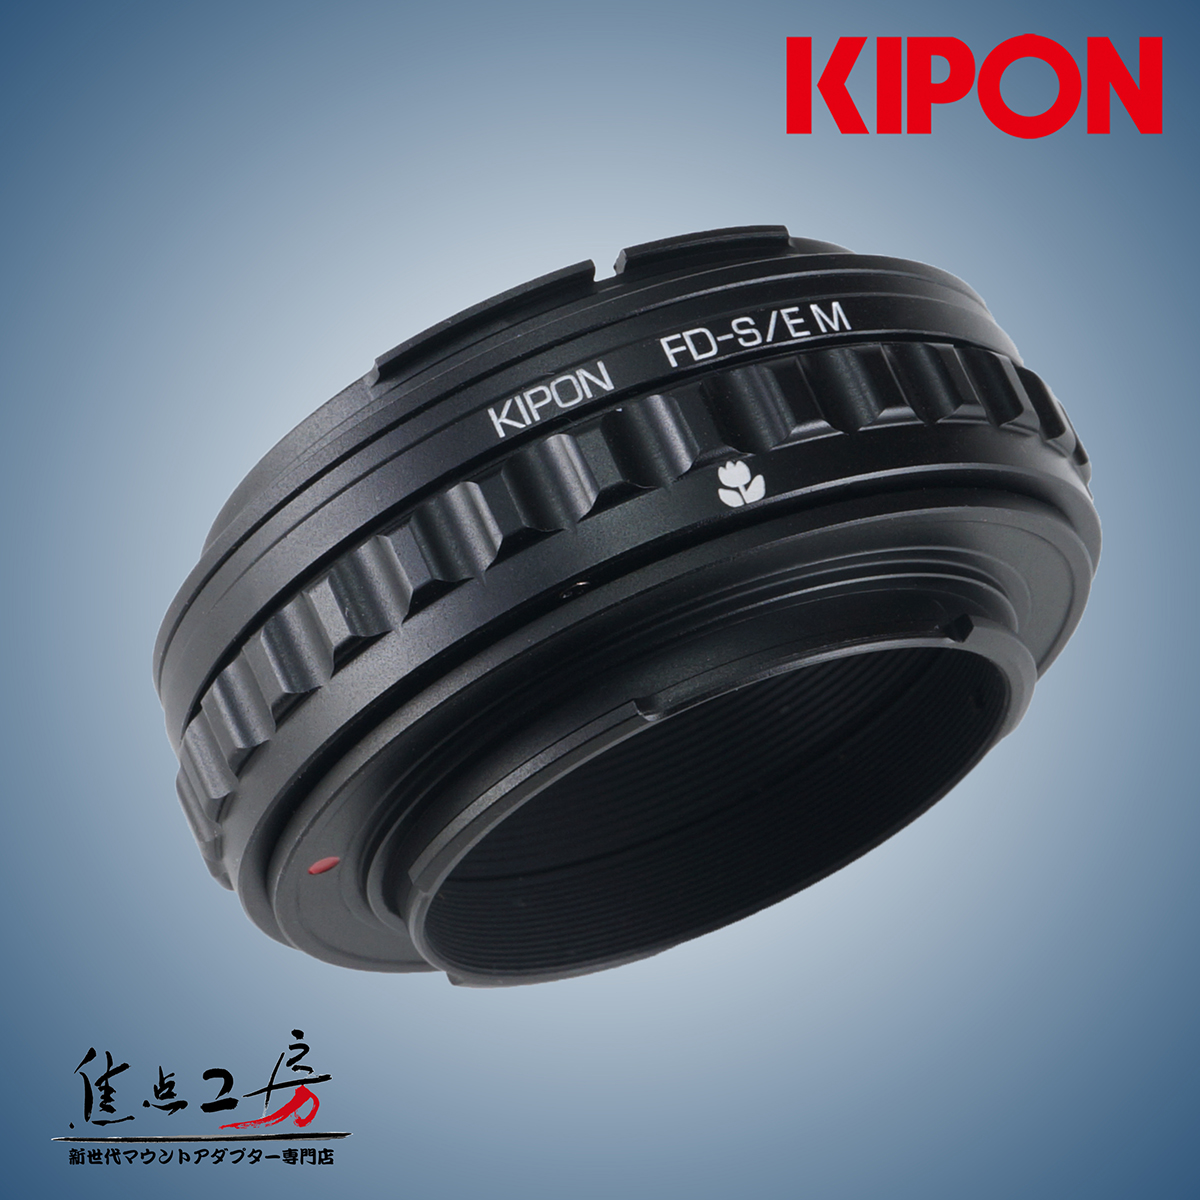 KIPON (kepong) Canon FD mount lenses - Sony NEX / α E mount adapter with  macro and helicoid